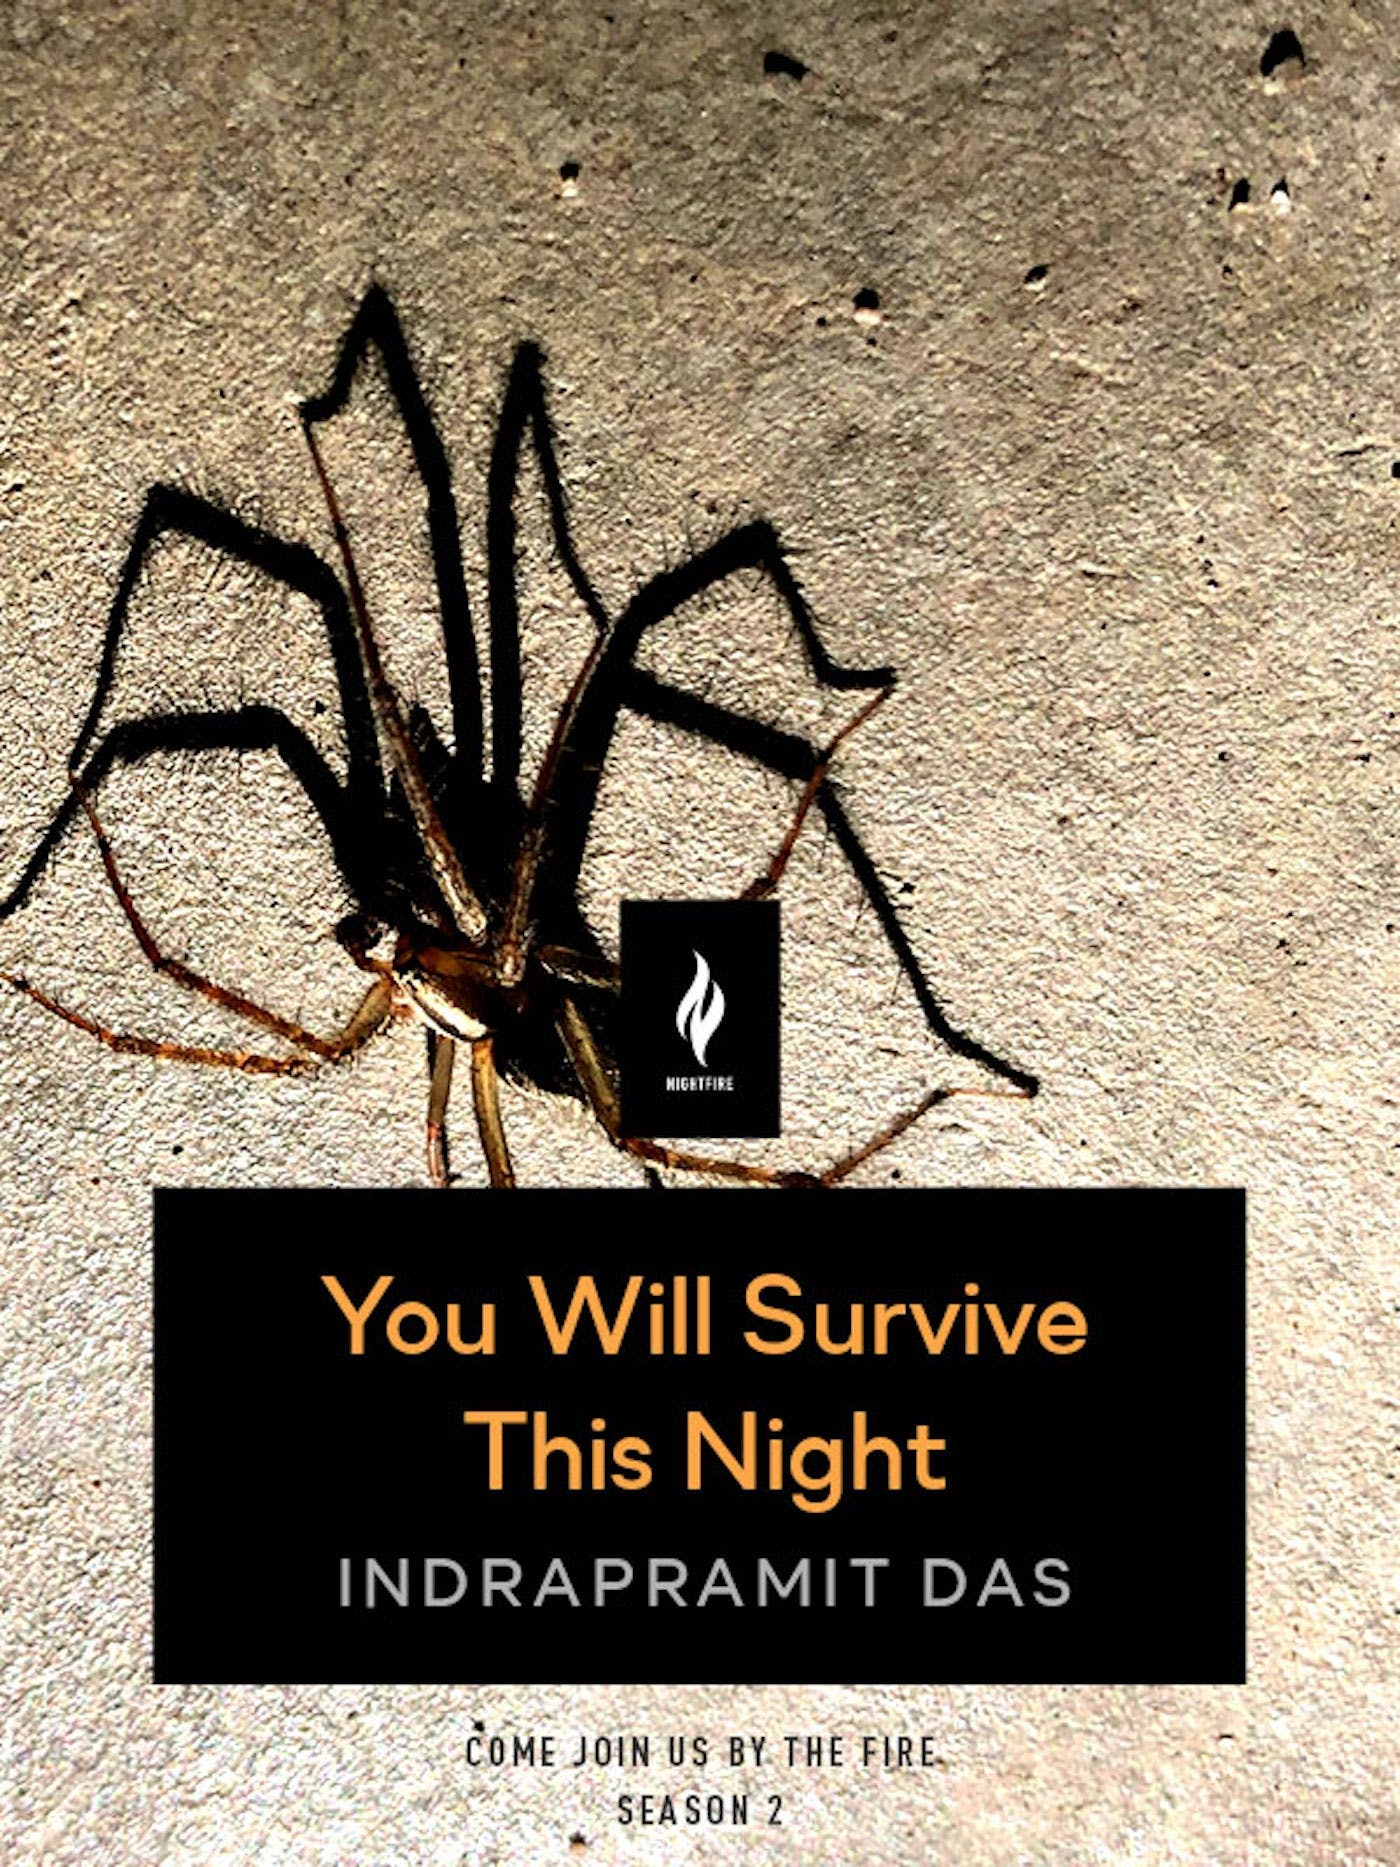 Image of You Will Survive This Night